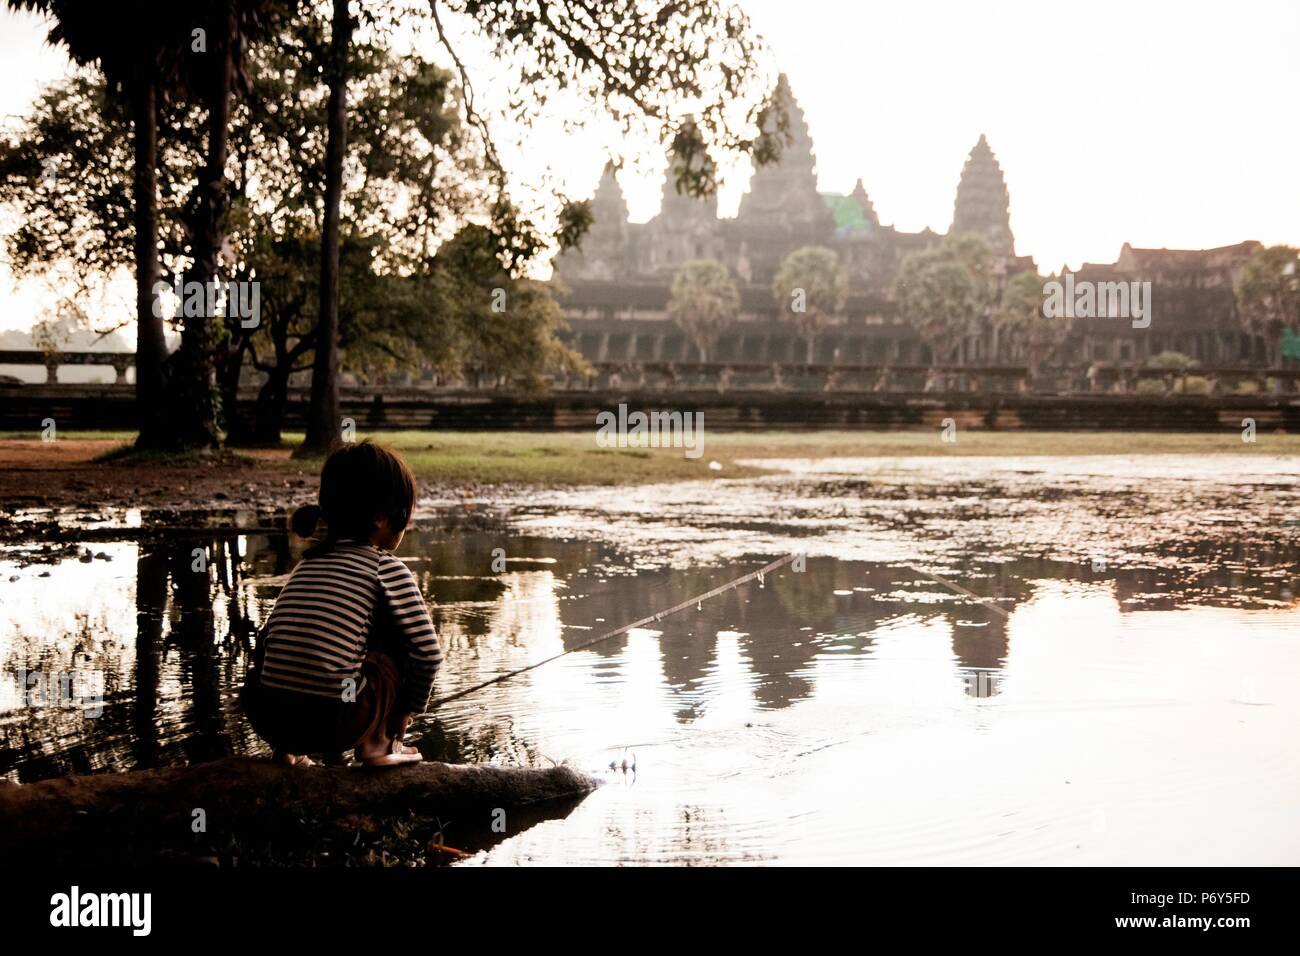 Girl fishing in the lake of Angkor Wat, ancient Cambodian city hidden in the forest very visited by tourists - Stock Image